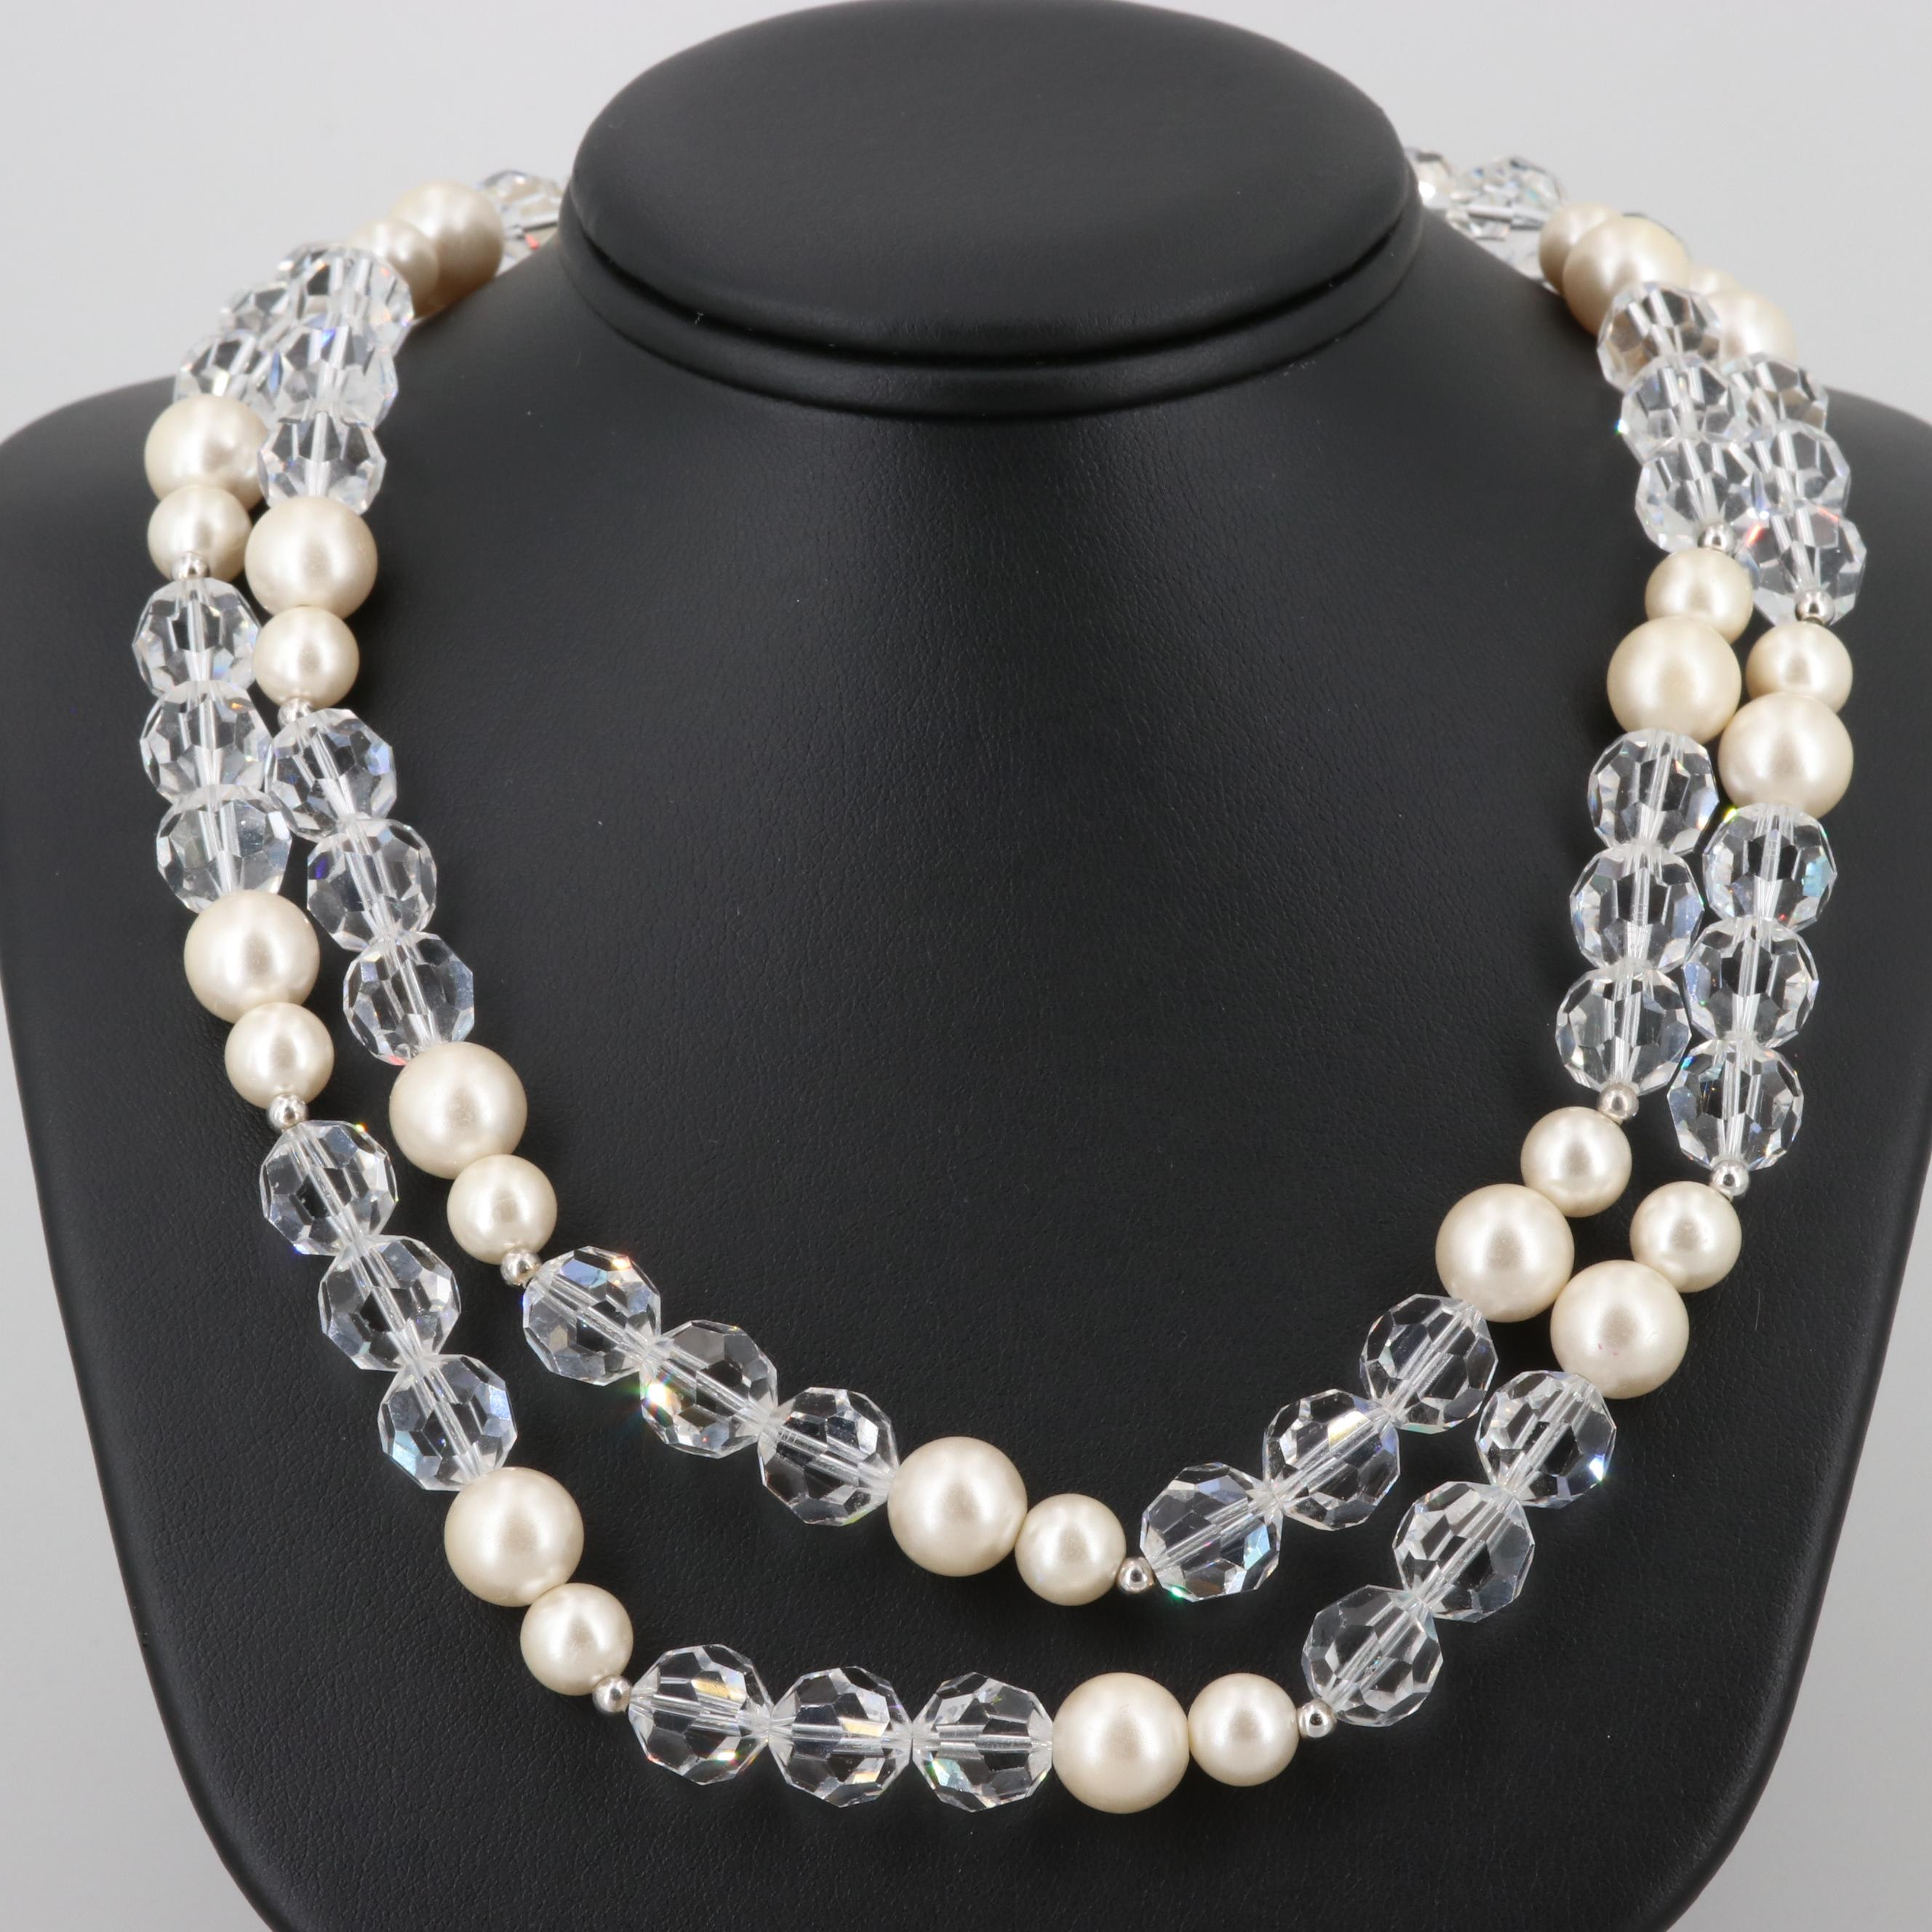 Imitation Pearl and Glass Crystal Beaded Necklace